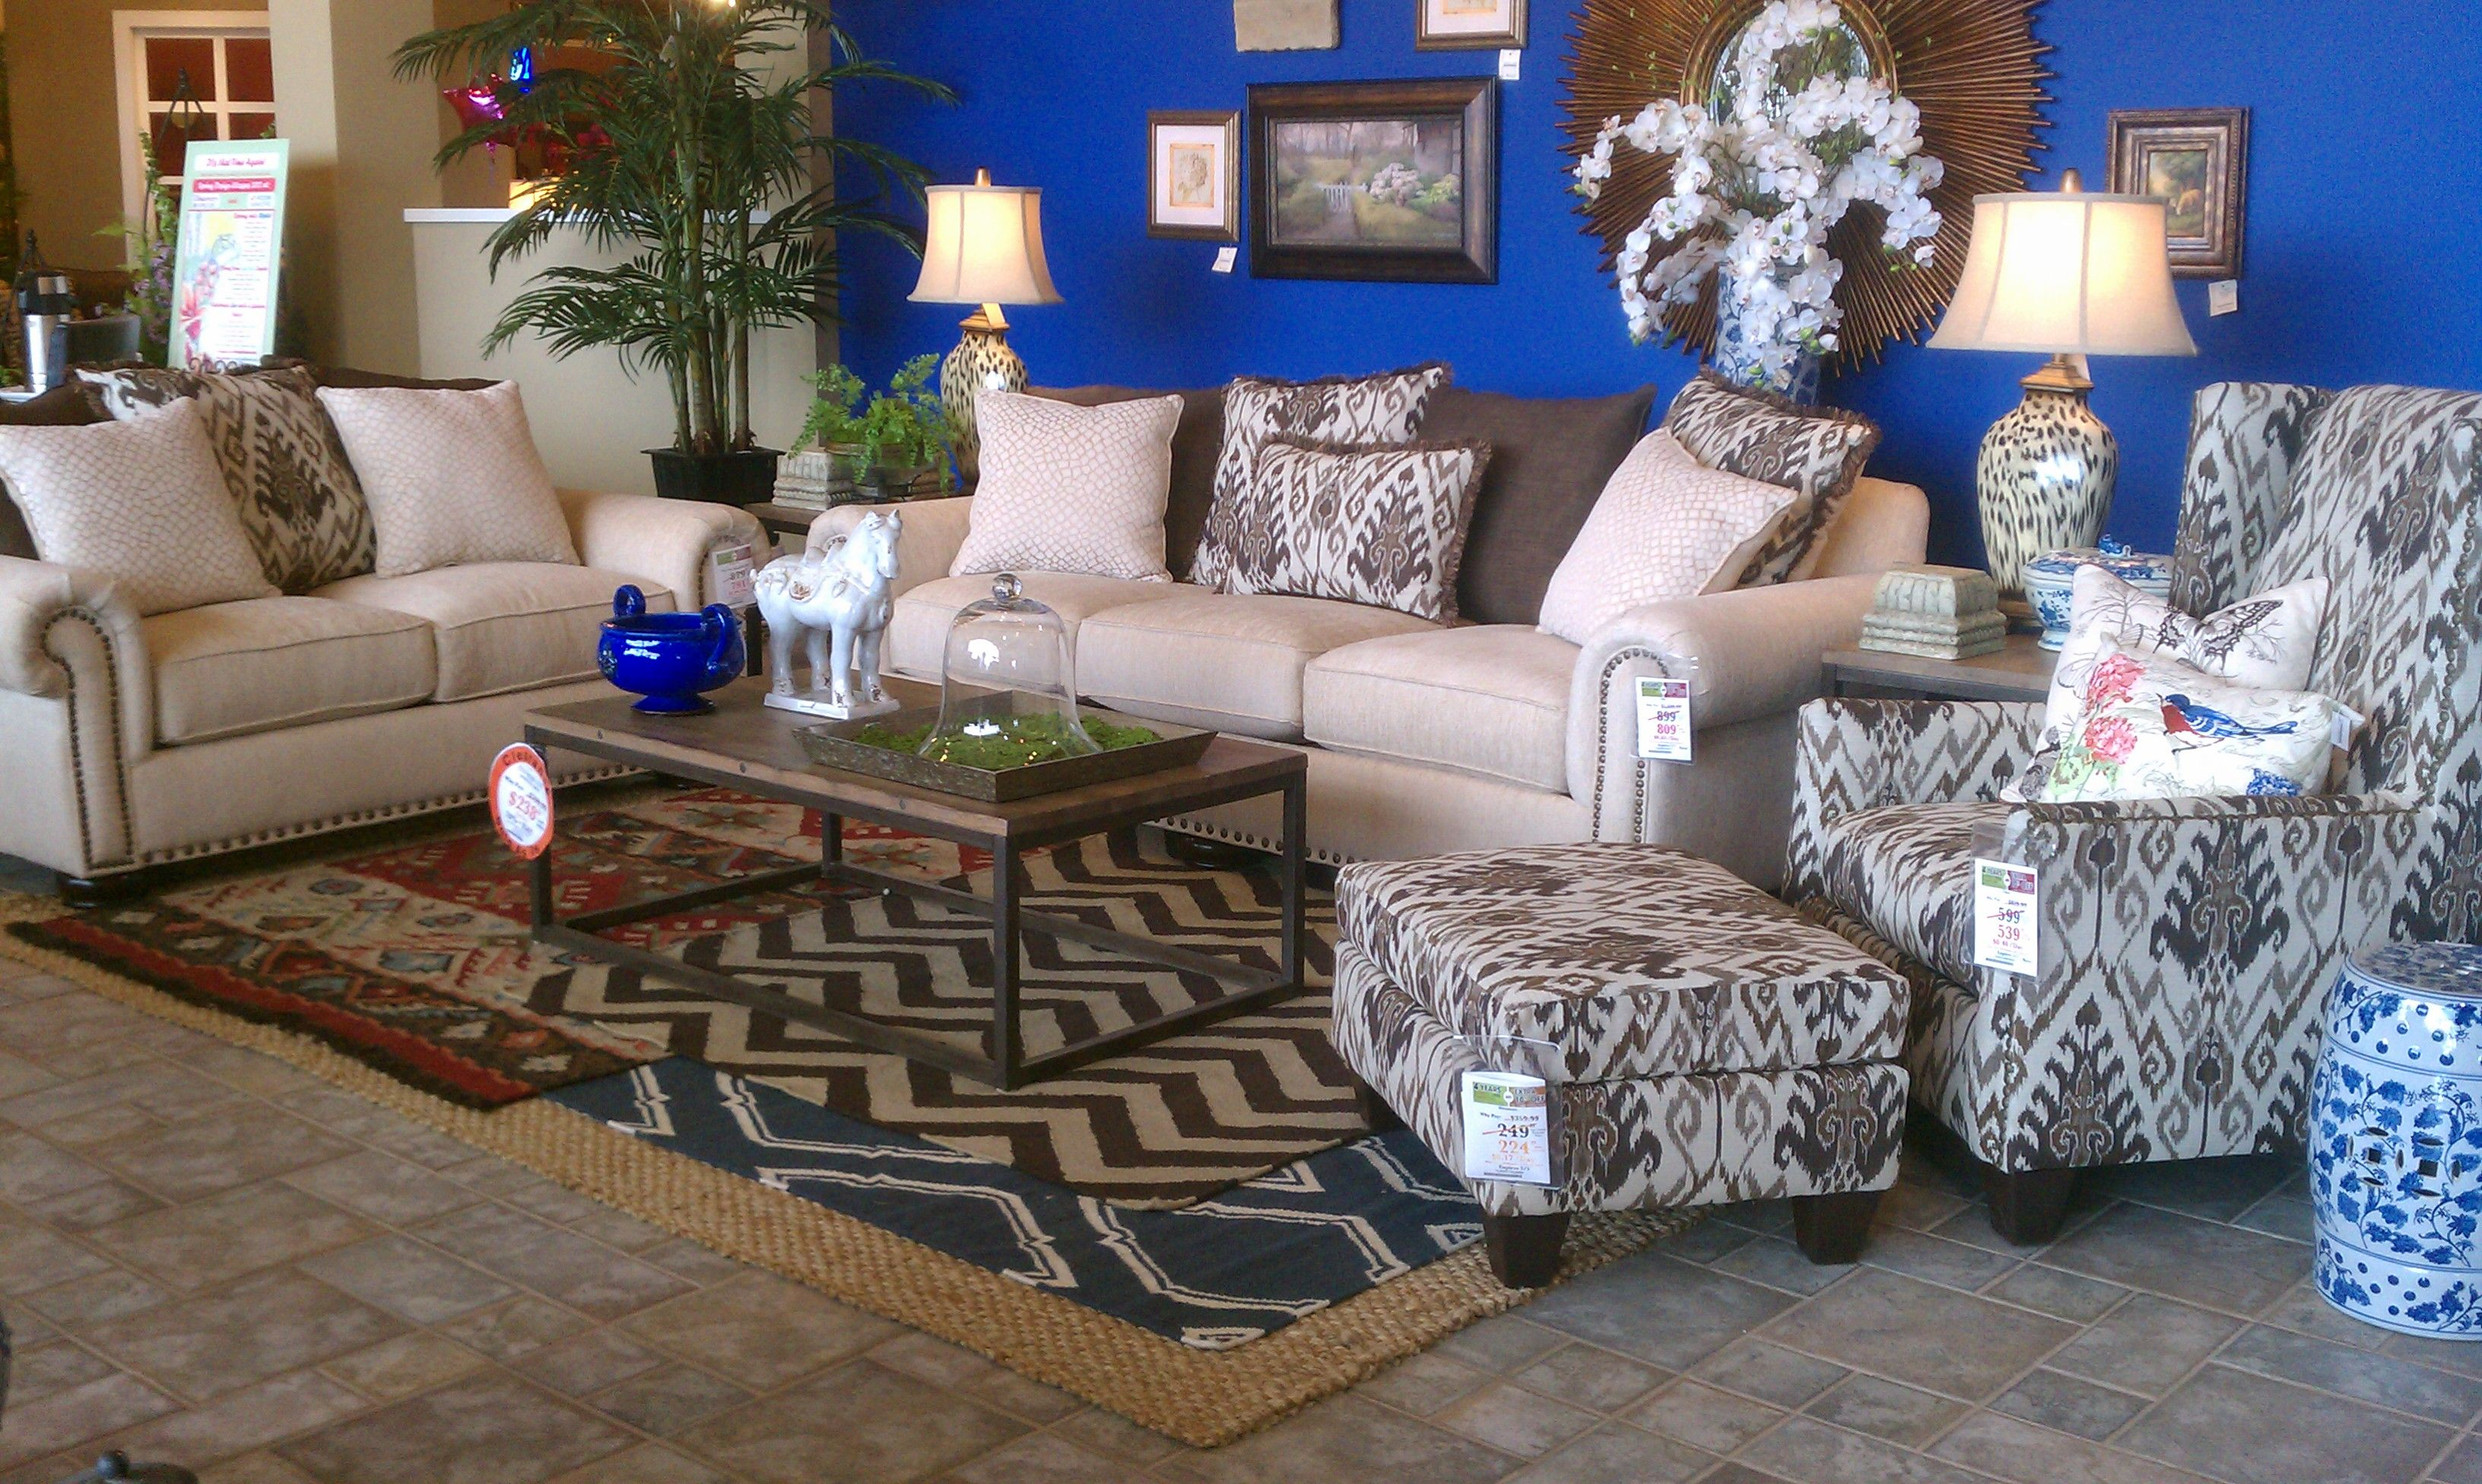 Light sofa loveseat and print accent chair against a beautiful blue